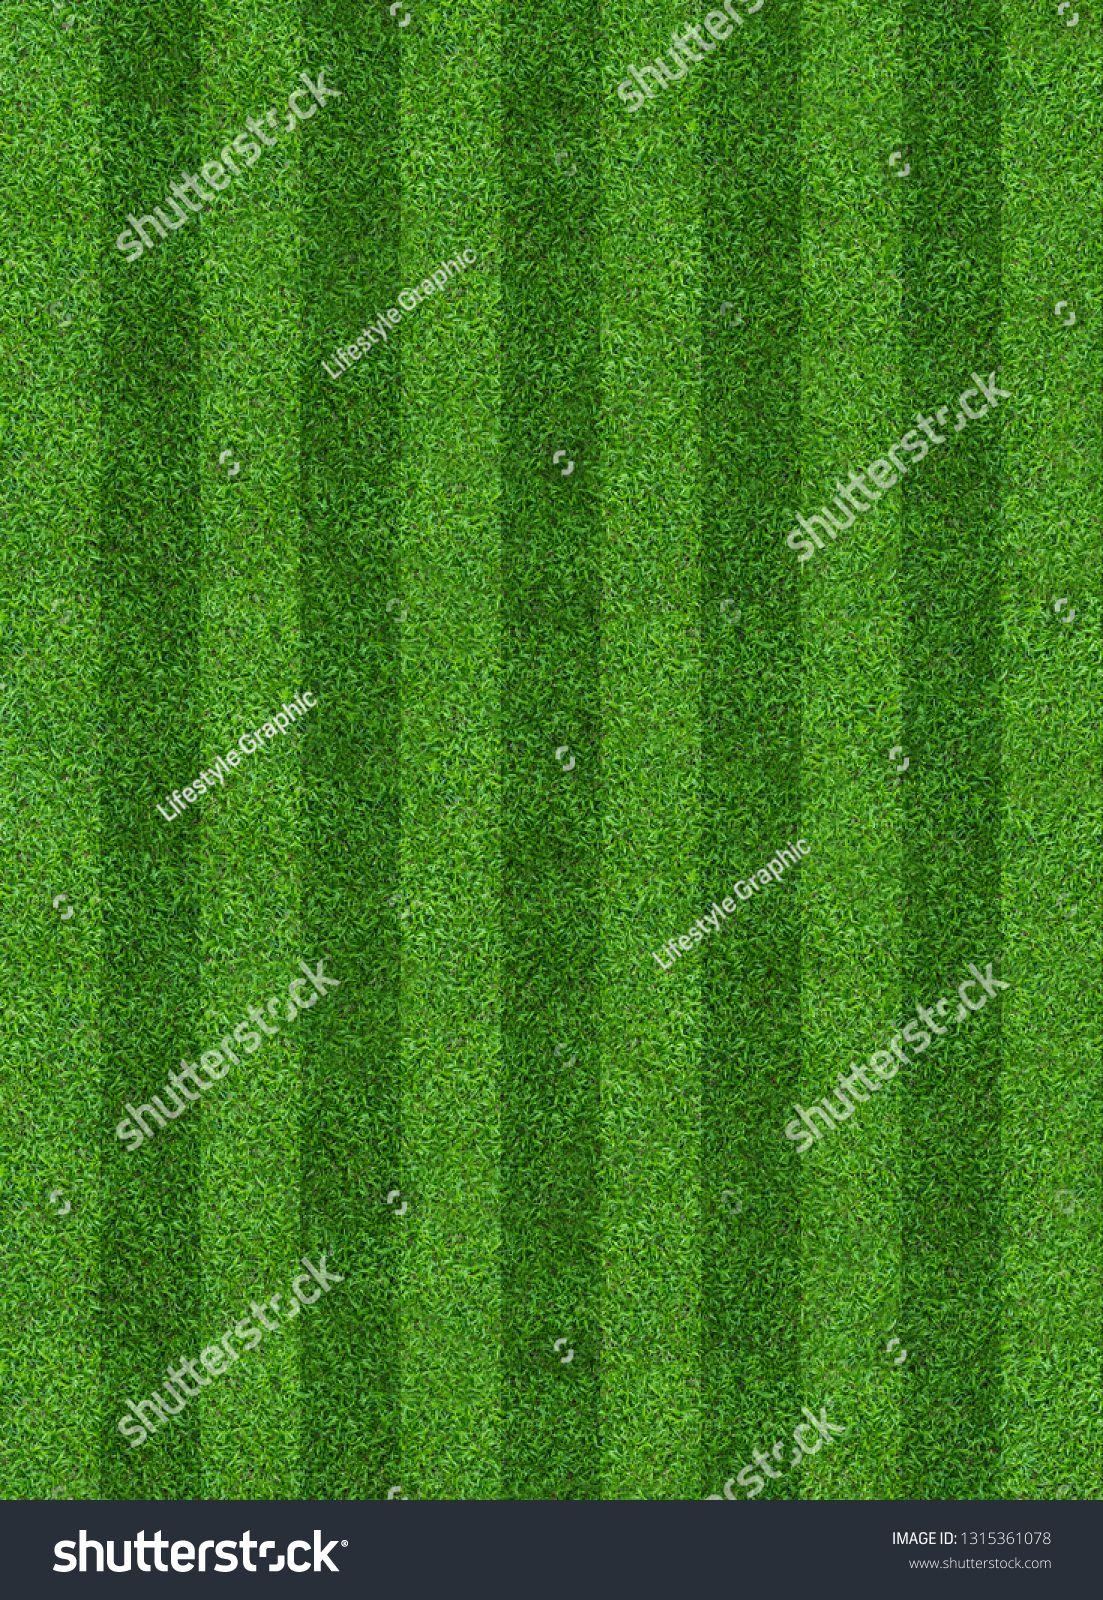 Green Grass Field Background For Soccer And Football Sports Green Lawn Pattern And Texture Background Close Up Image Ad Green Lawn Grass Field Green Grass